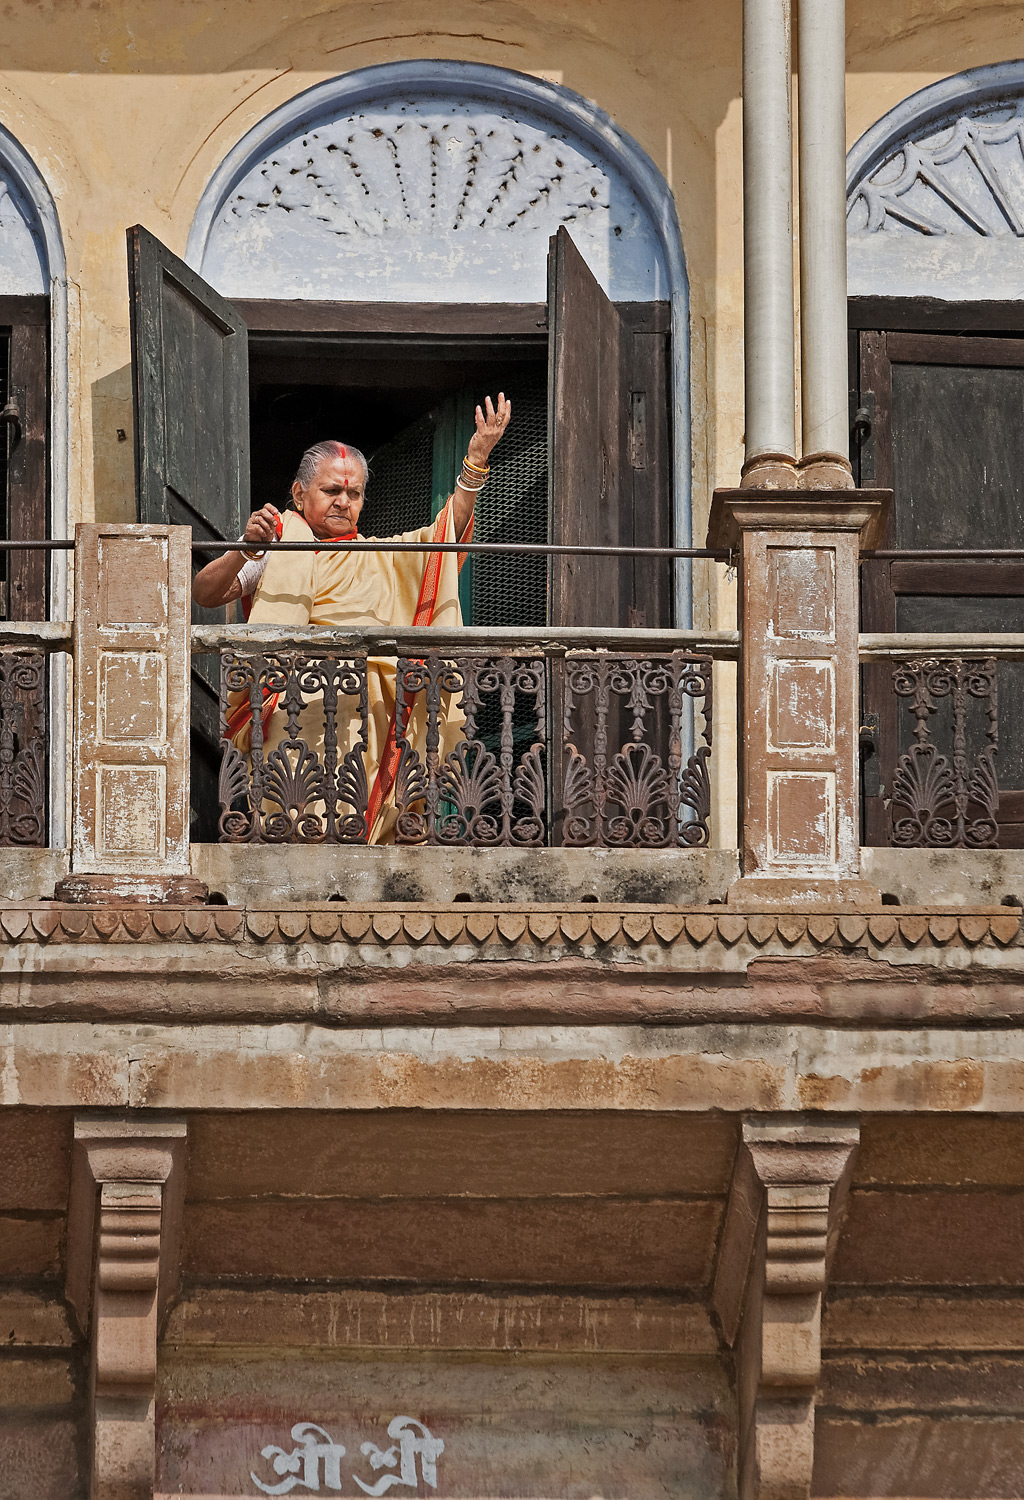 Morning prayer, Varanasi, India